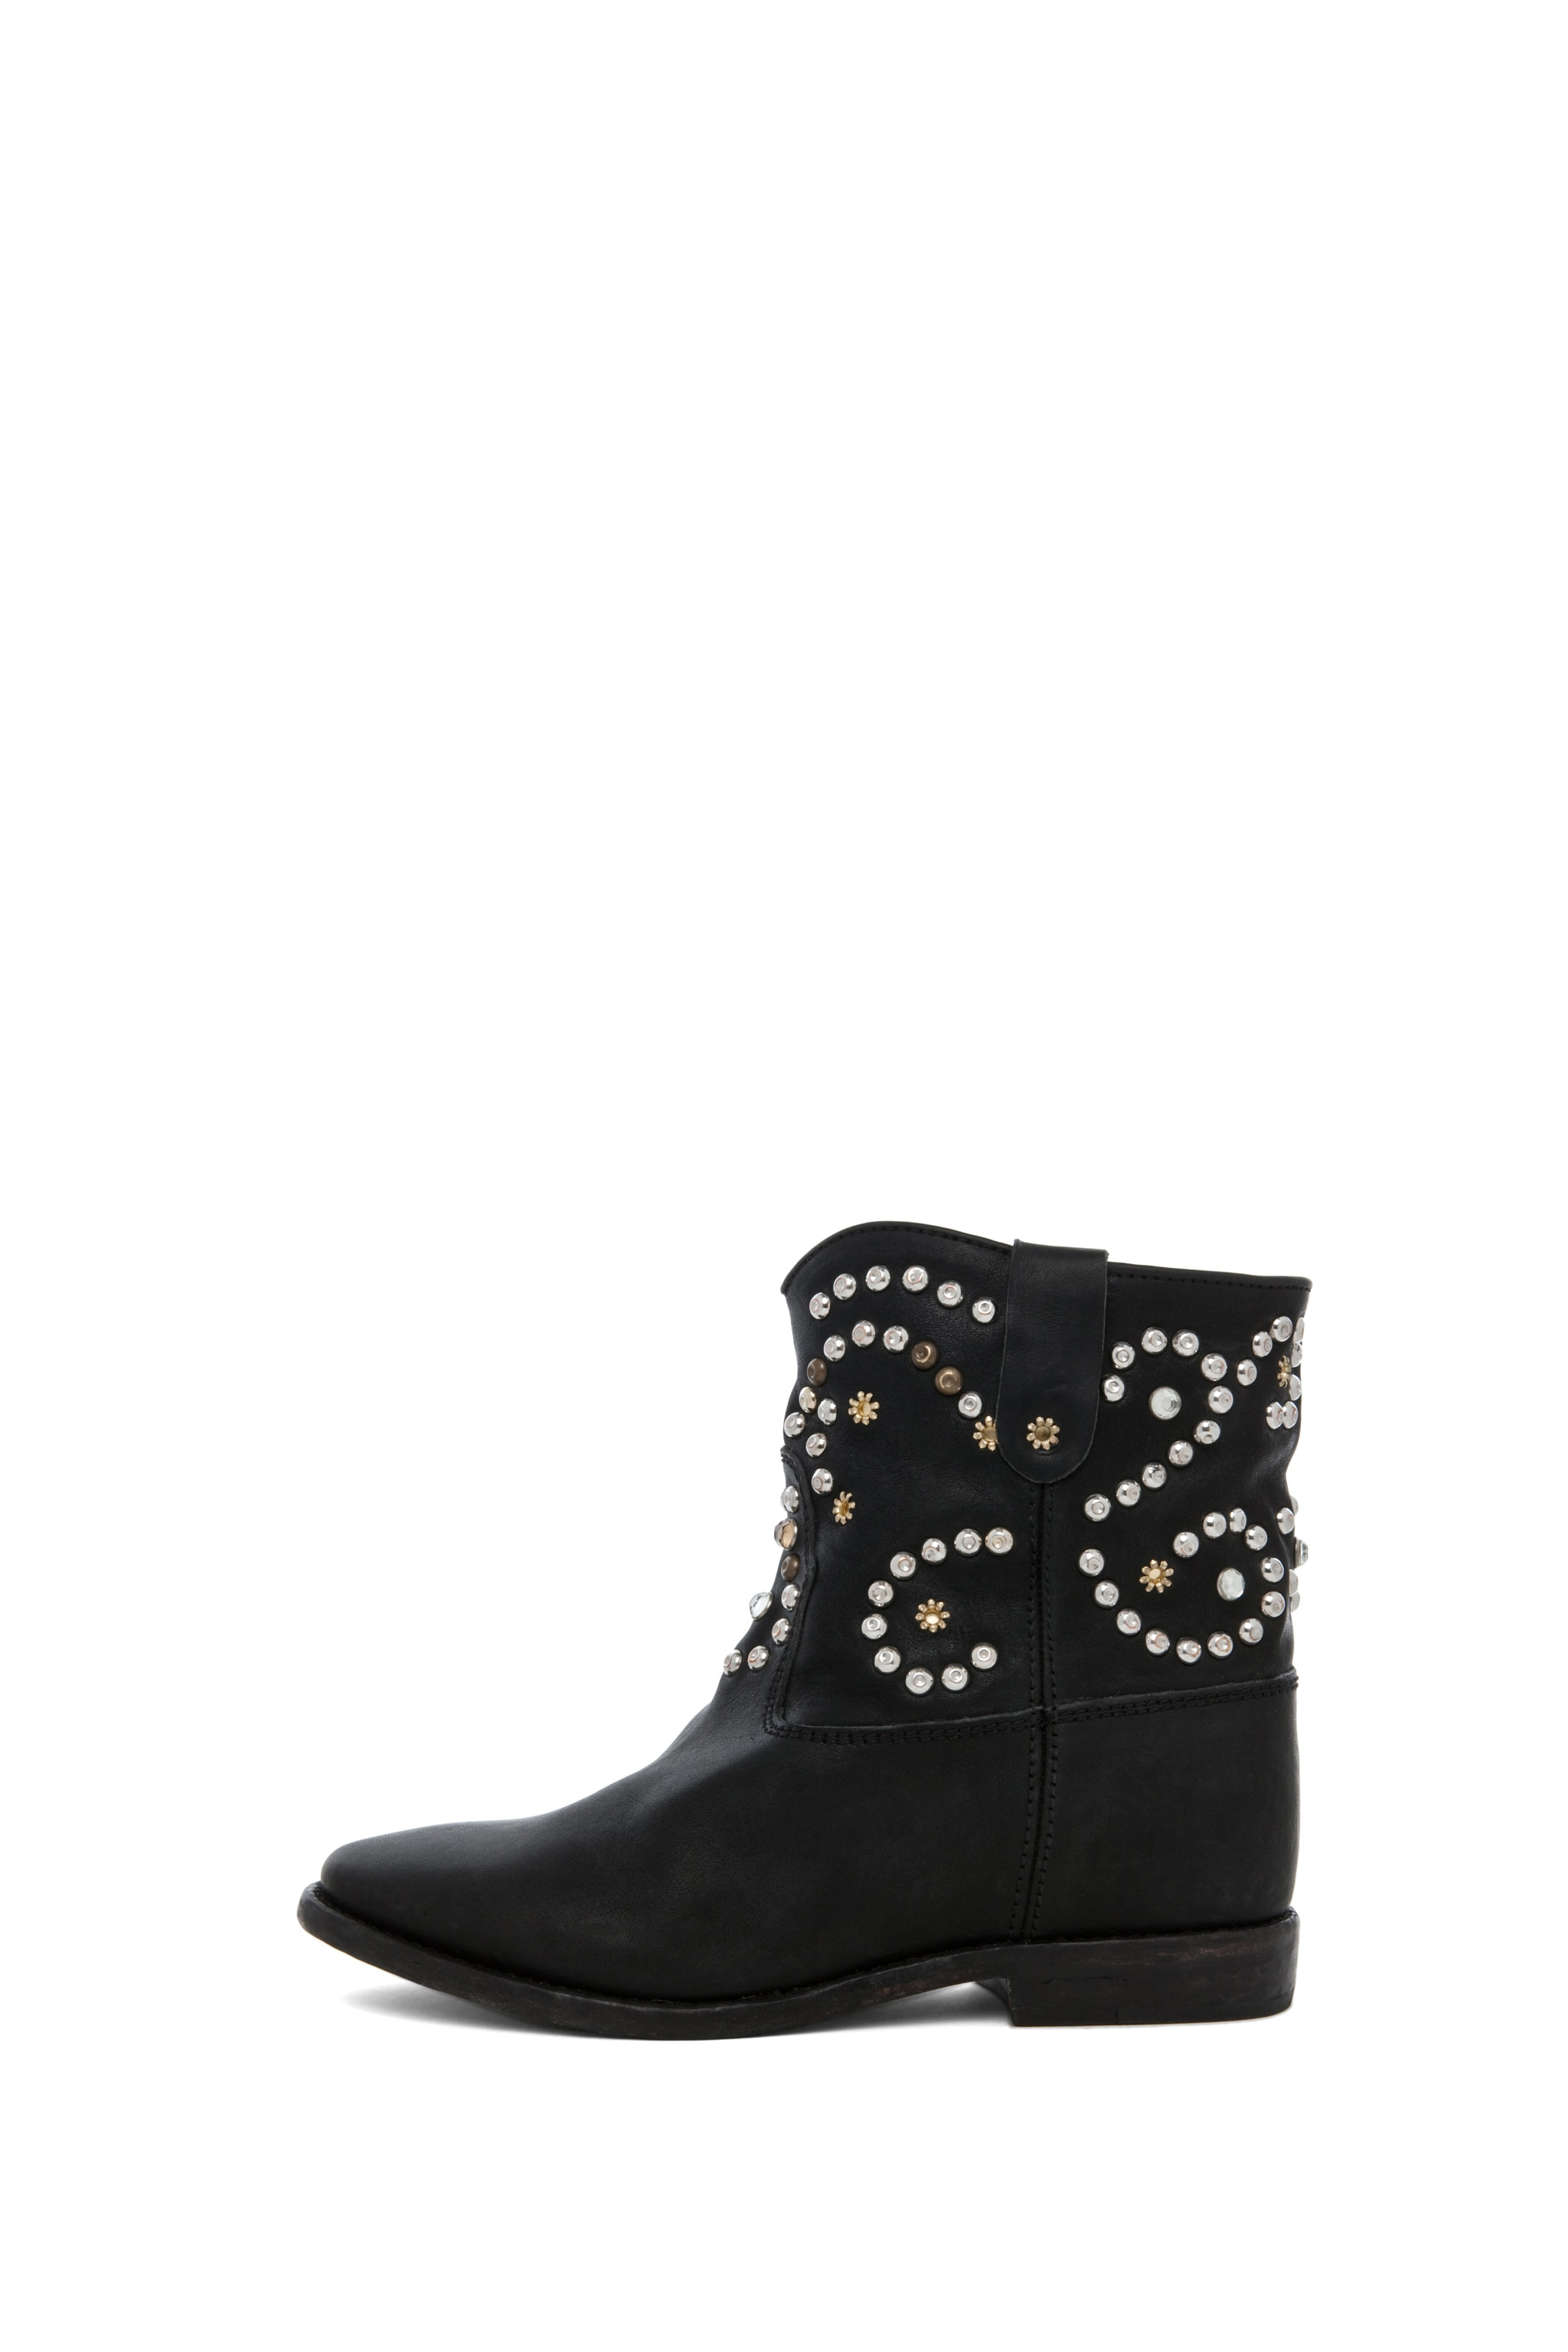 Image 1 of Isabel Marant Caleen Studded Bootie in Black